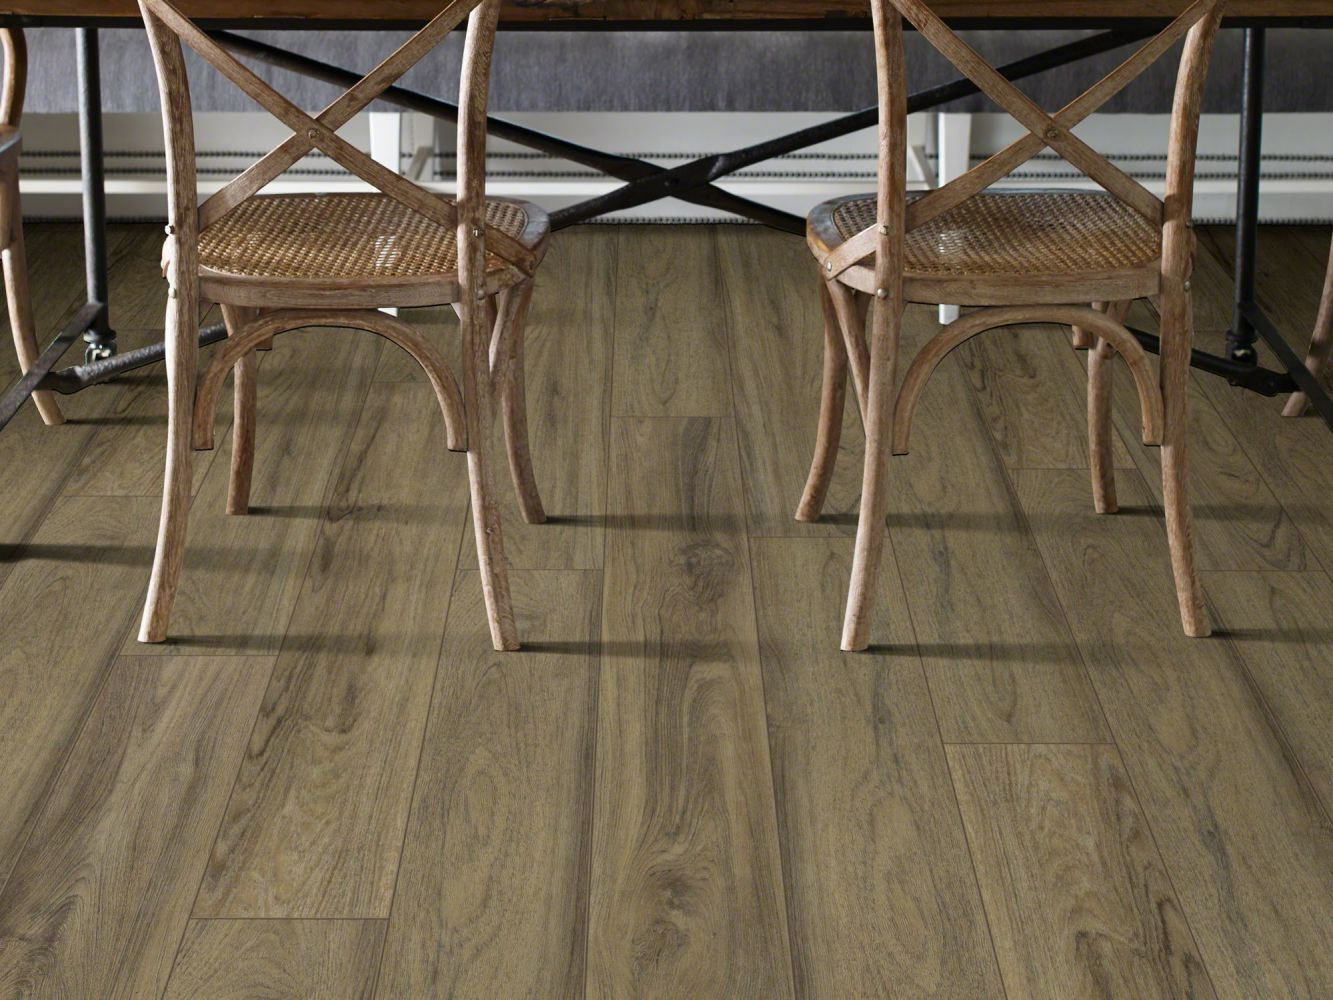 Shaw Floors Resilient Residential Mojave HD Plus Fiano 00587_0461V